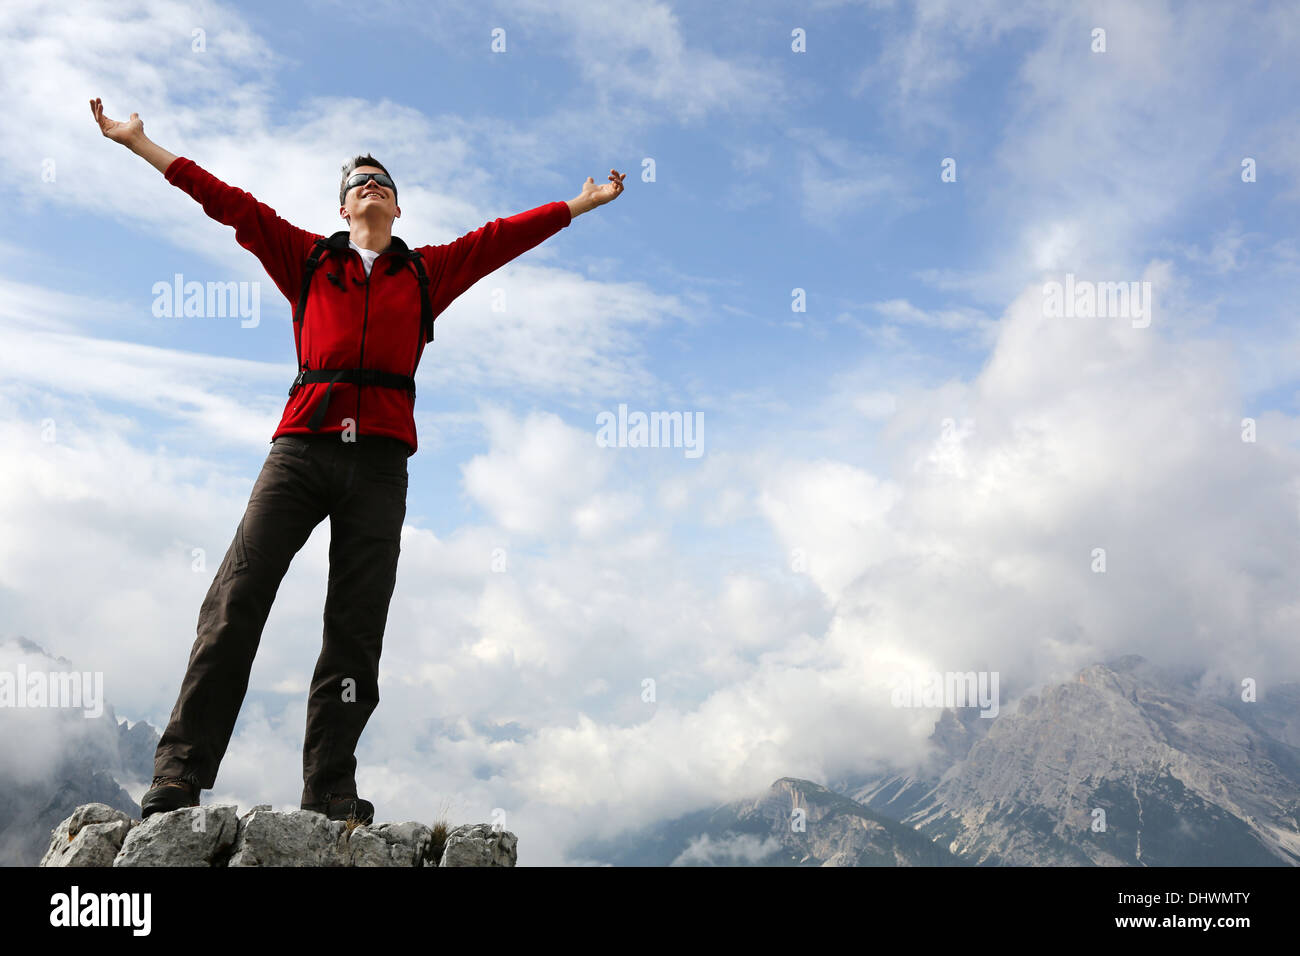 Young mountaineer standing on a rock and enjoying freedom in the mountains - Stock Image